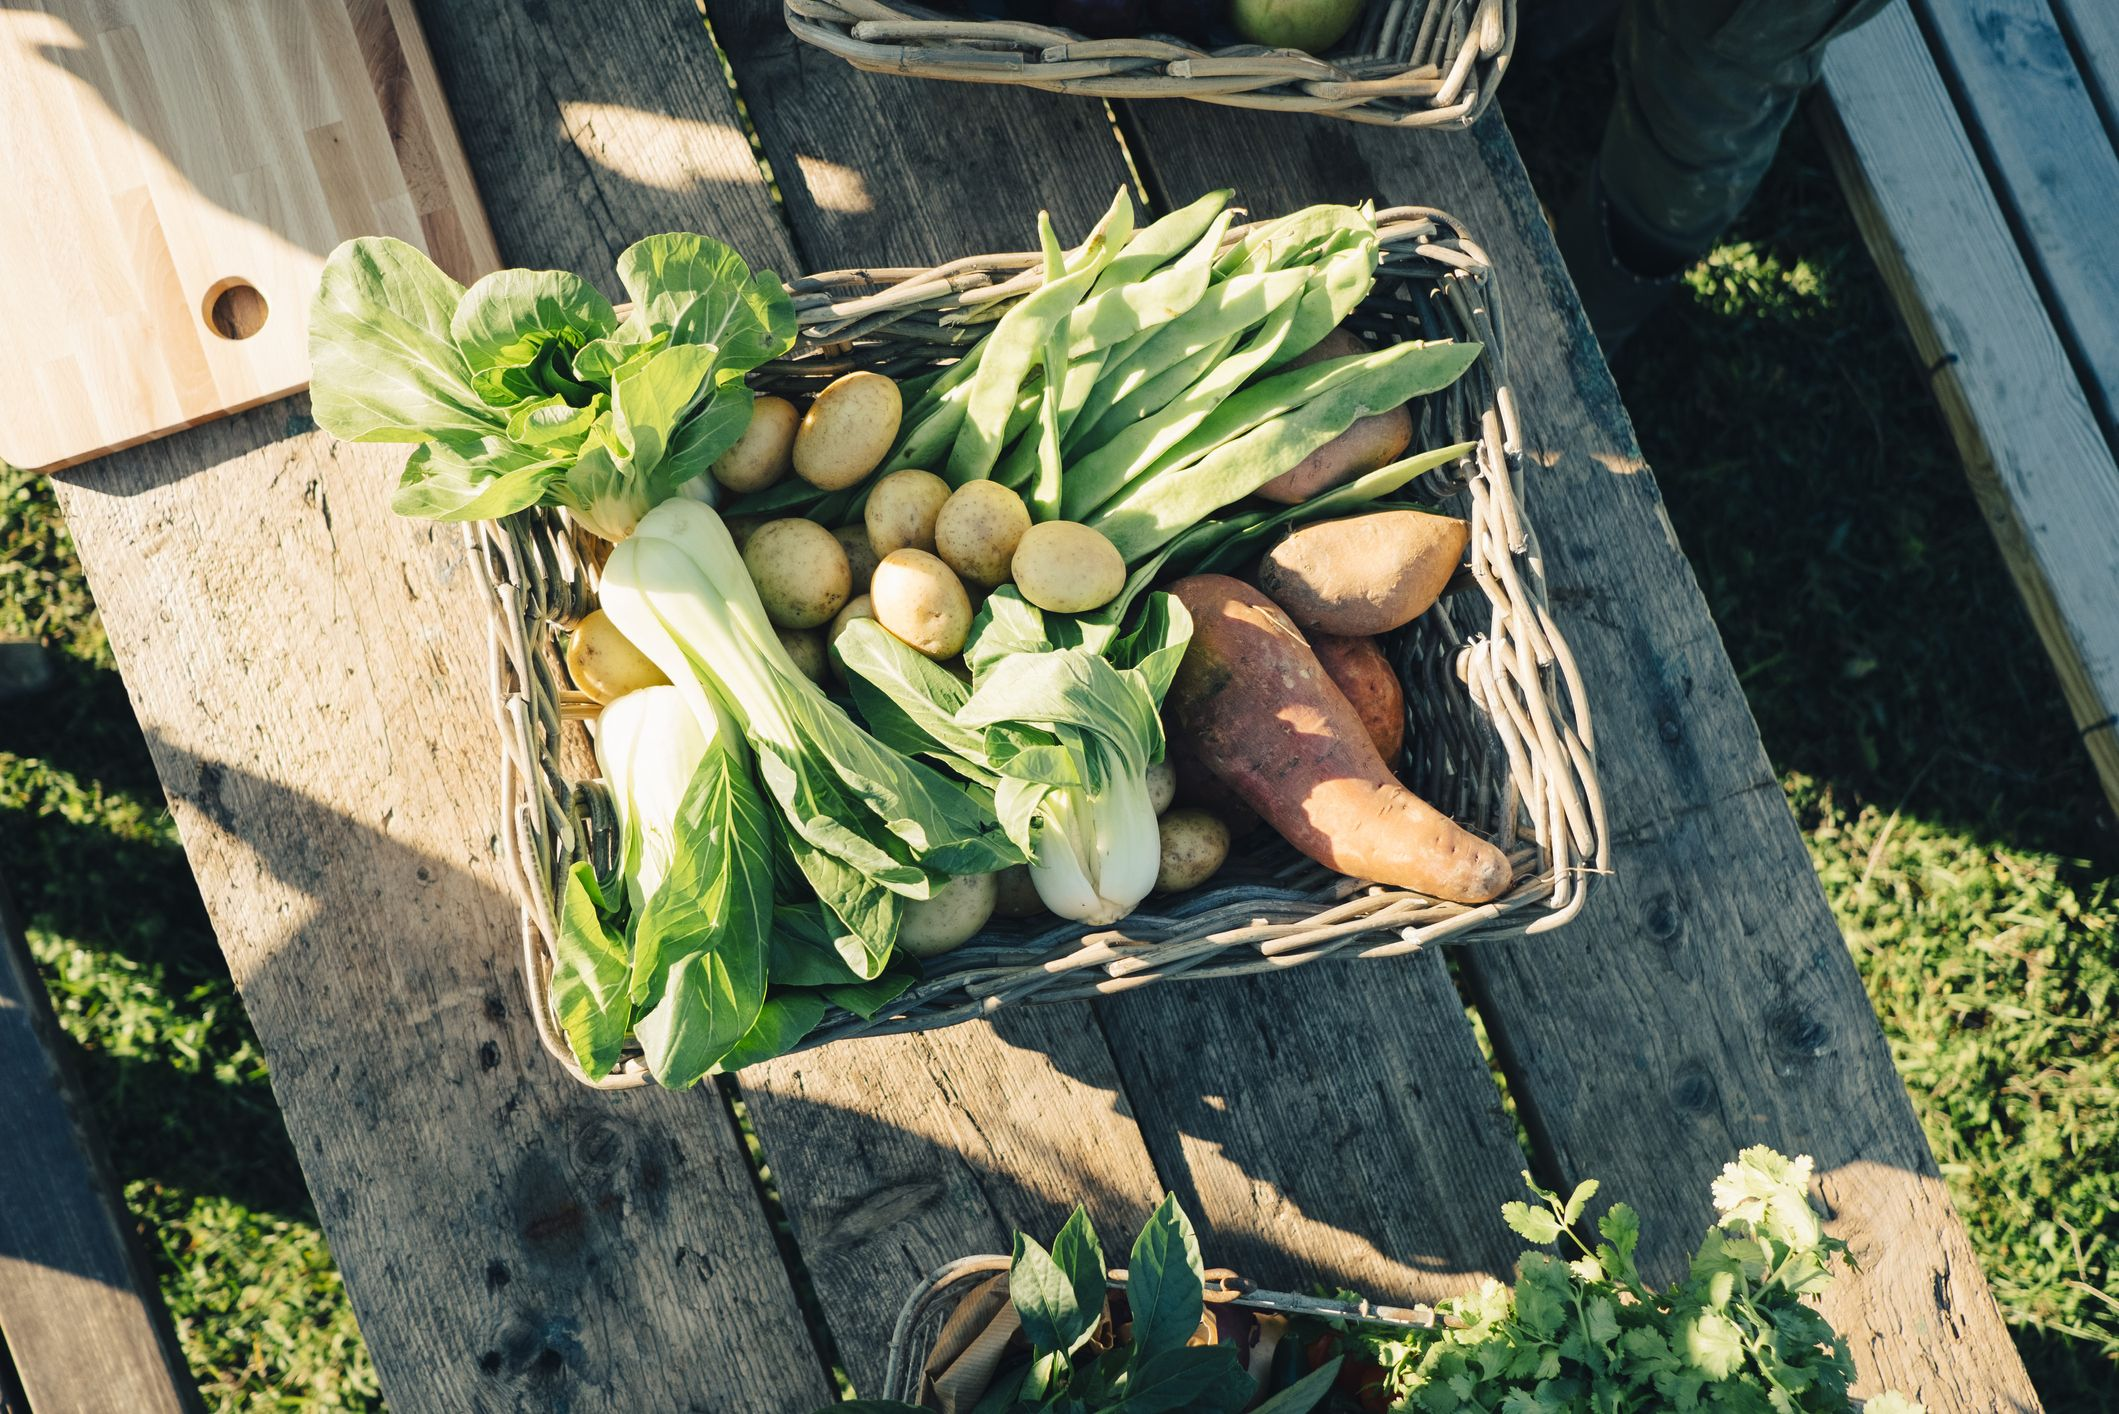 Clever hack shows how to grow your own produce using vegetable scraps